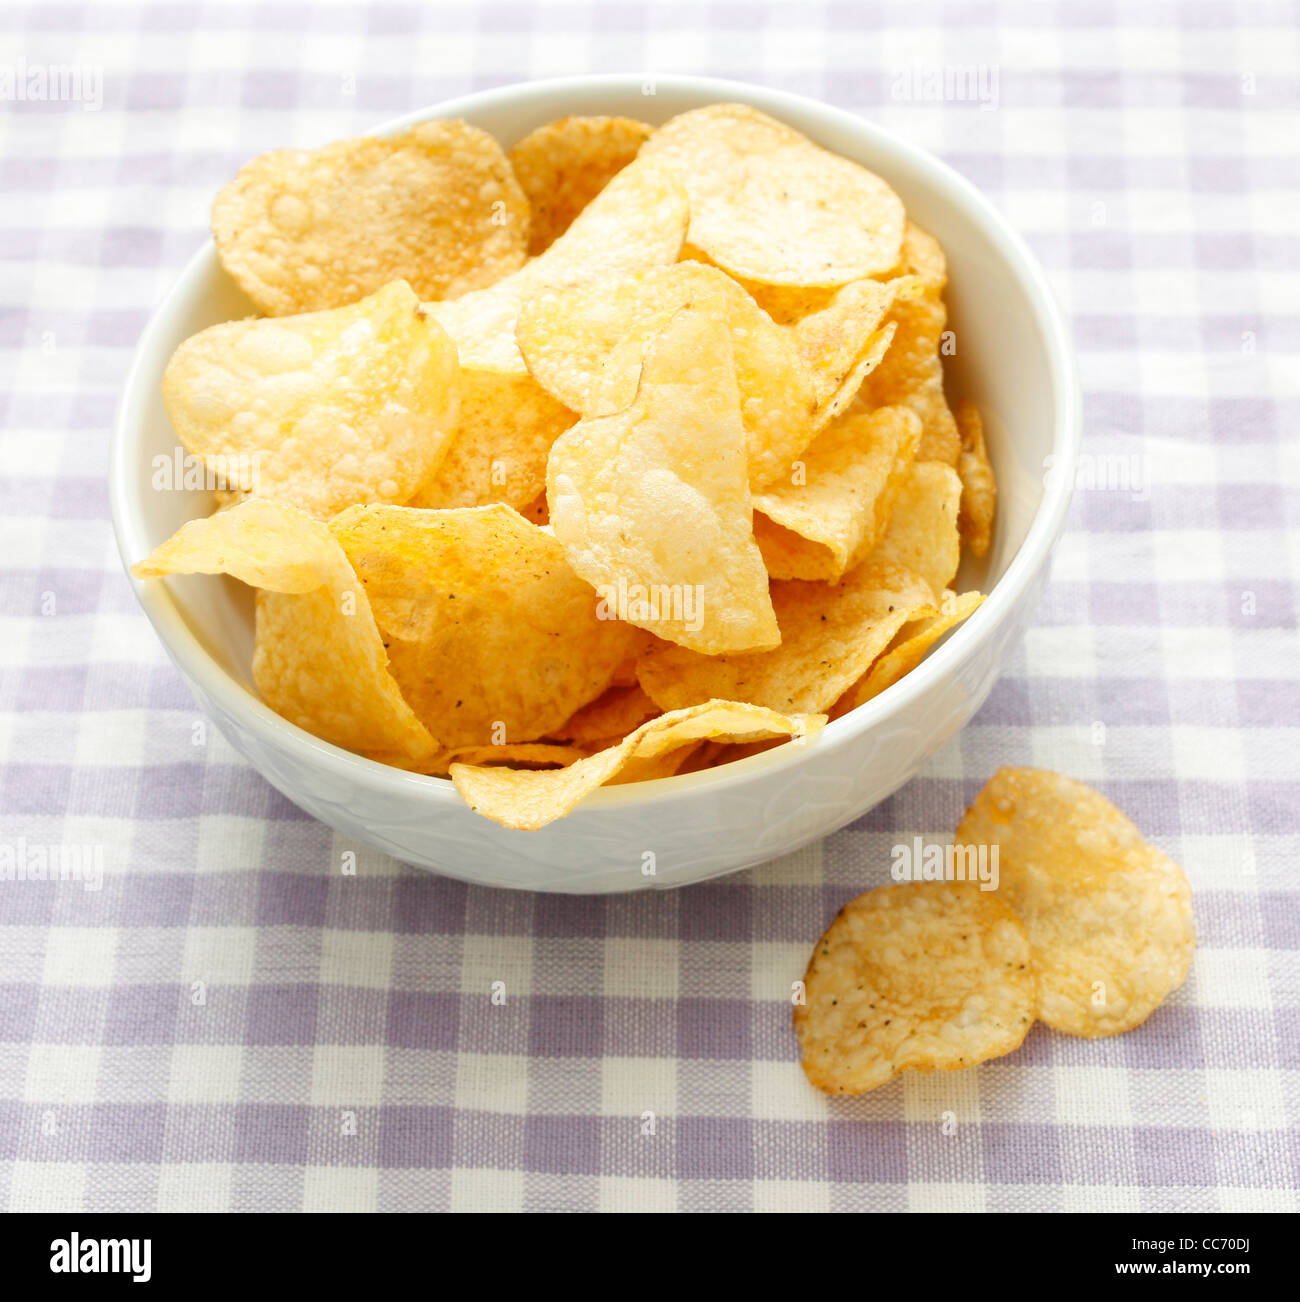 Chips in a bowl - Stock Image